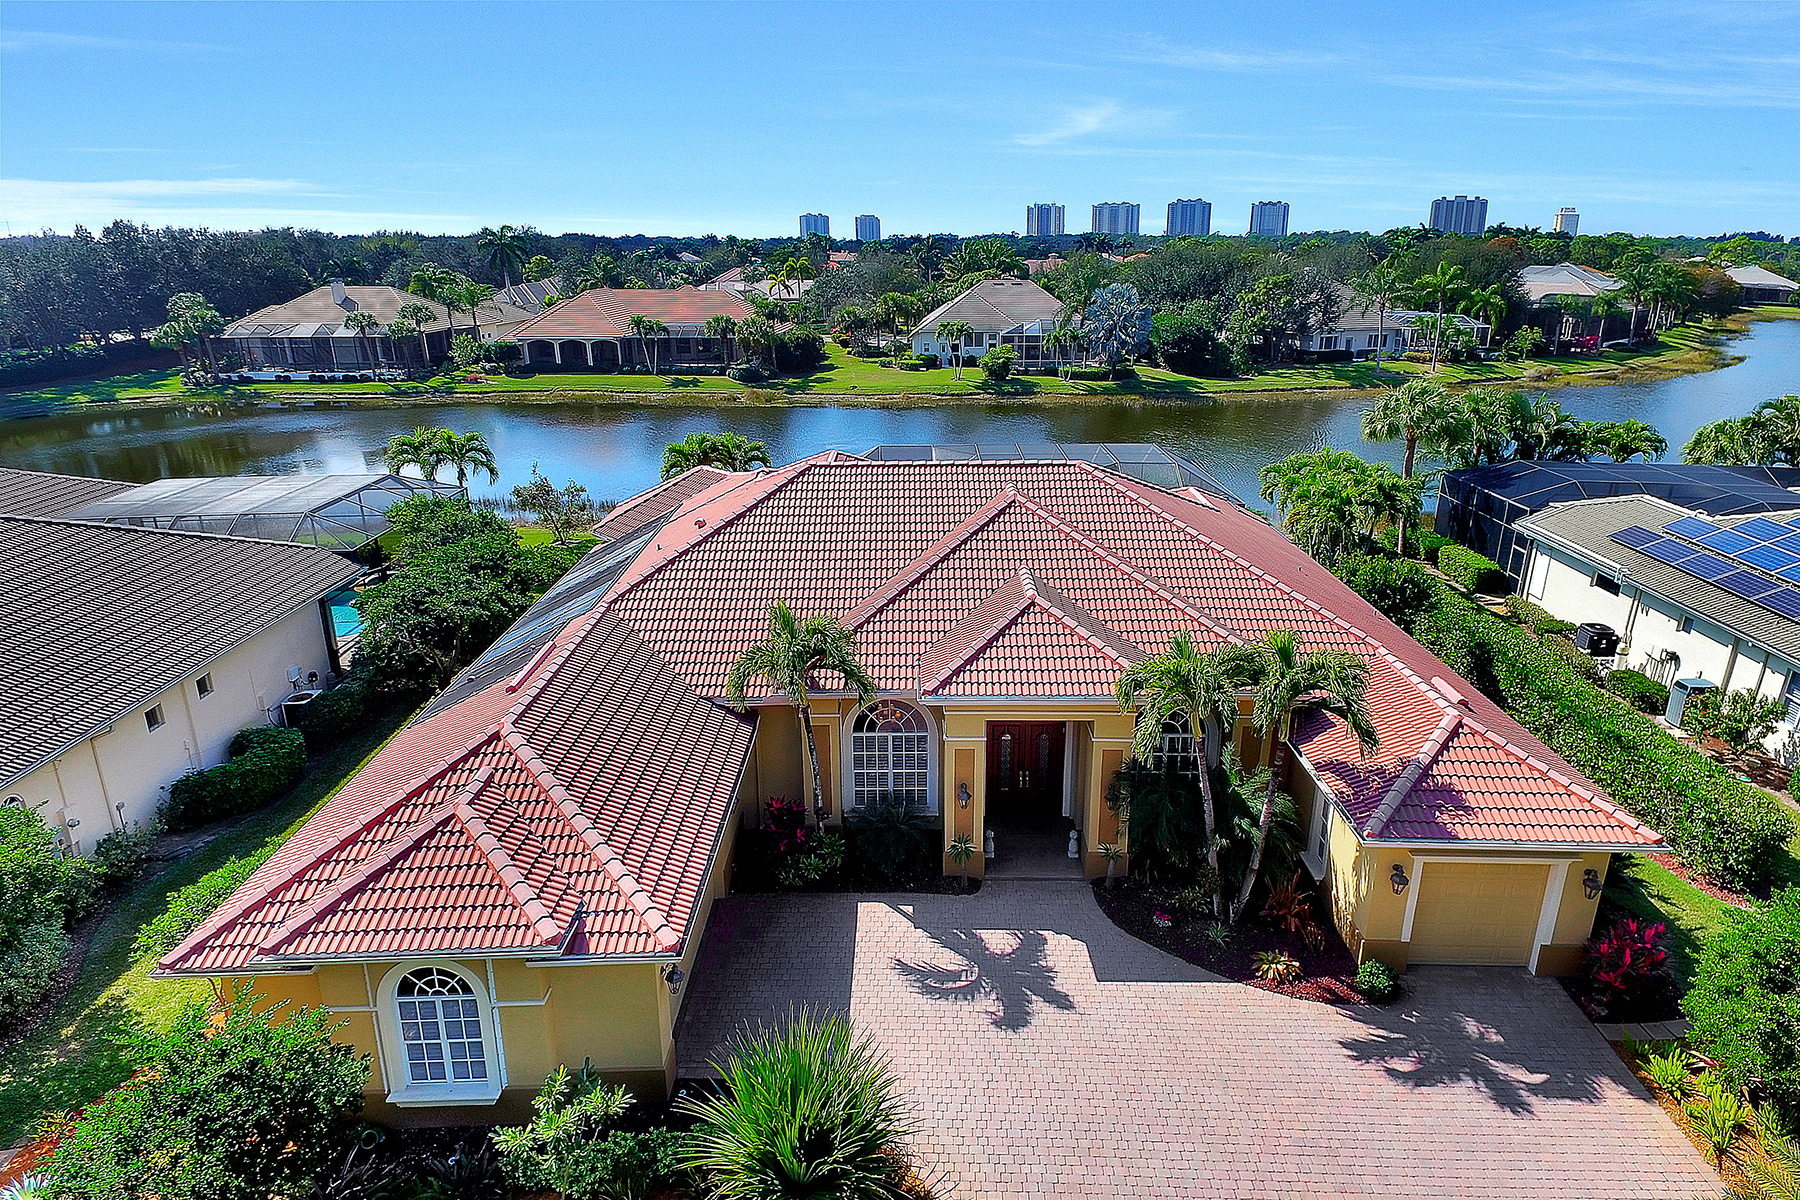 Single Family Home for Sale at PELICAN LANDING - WATERSIDE 23660 Peppermill Ct, Estero, Florida 34134 United States